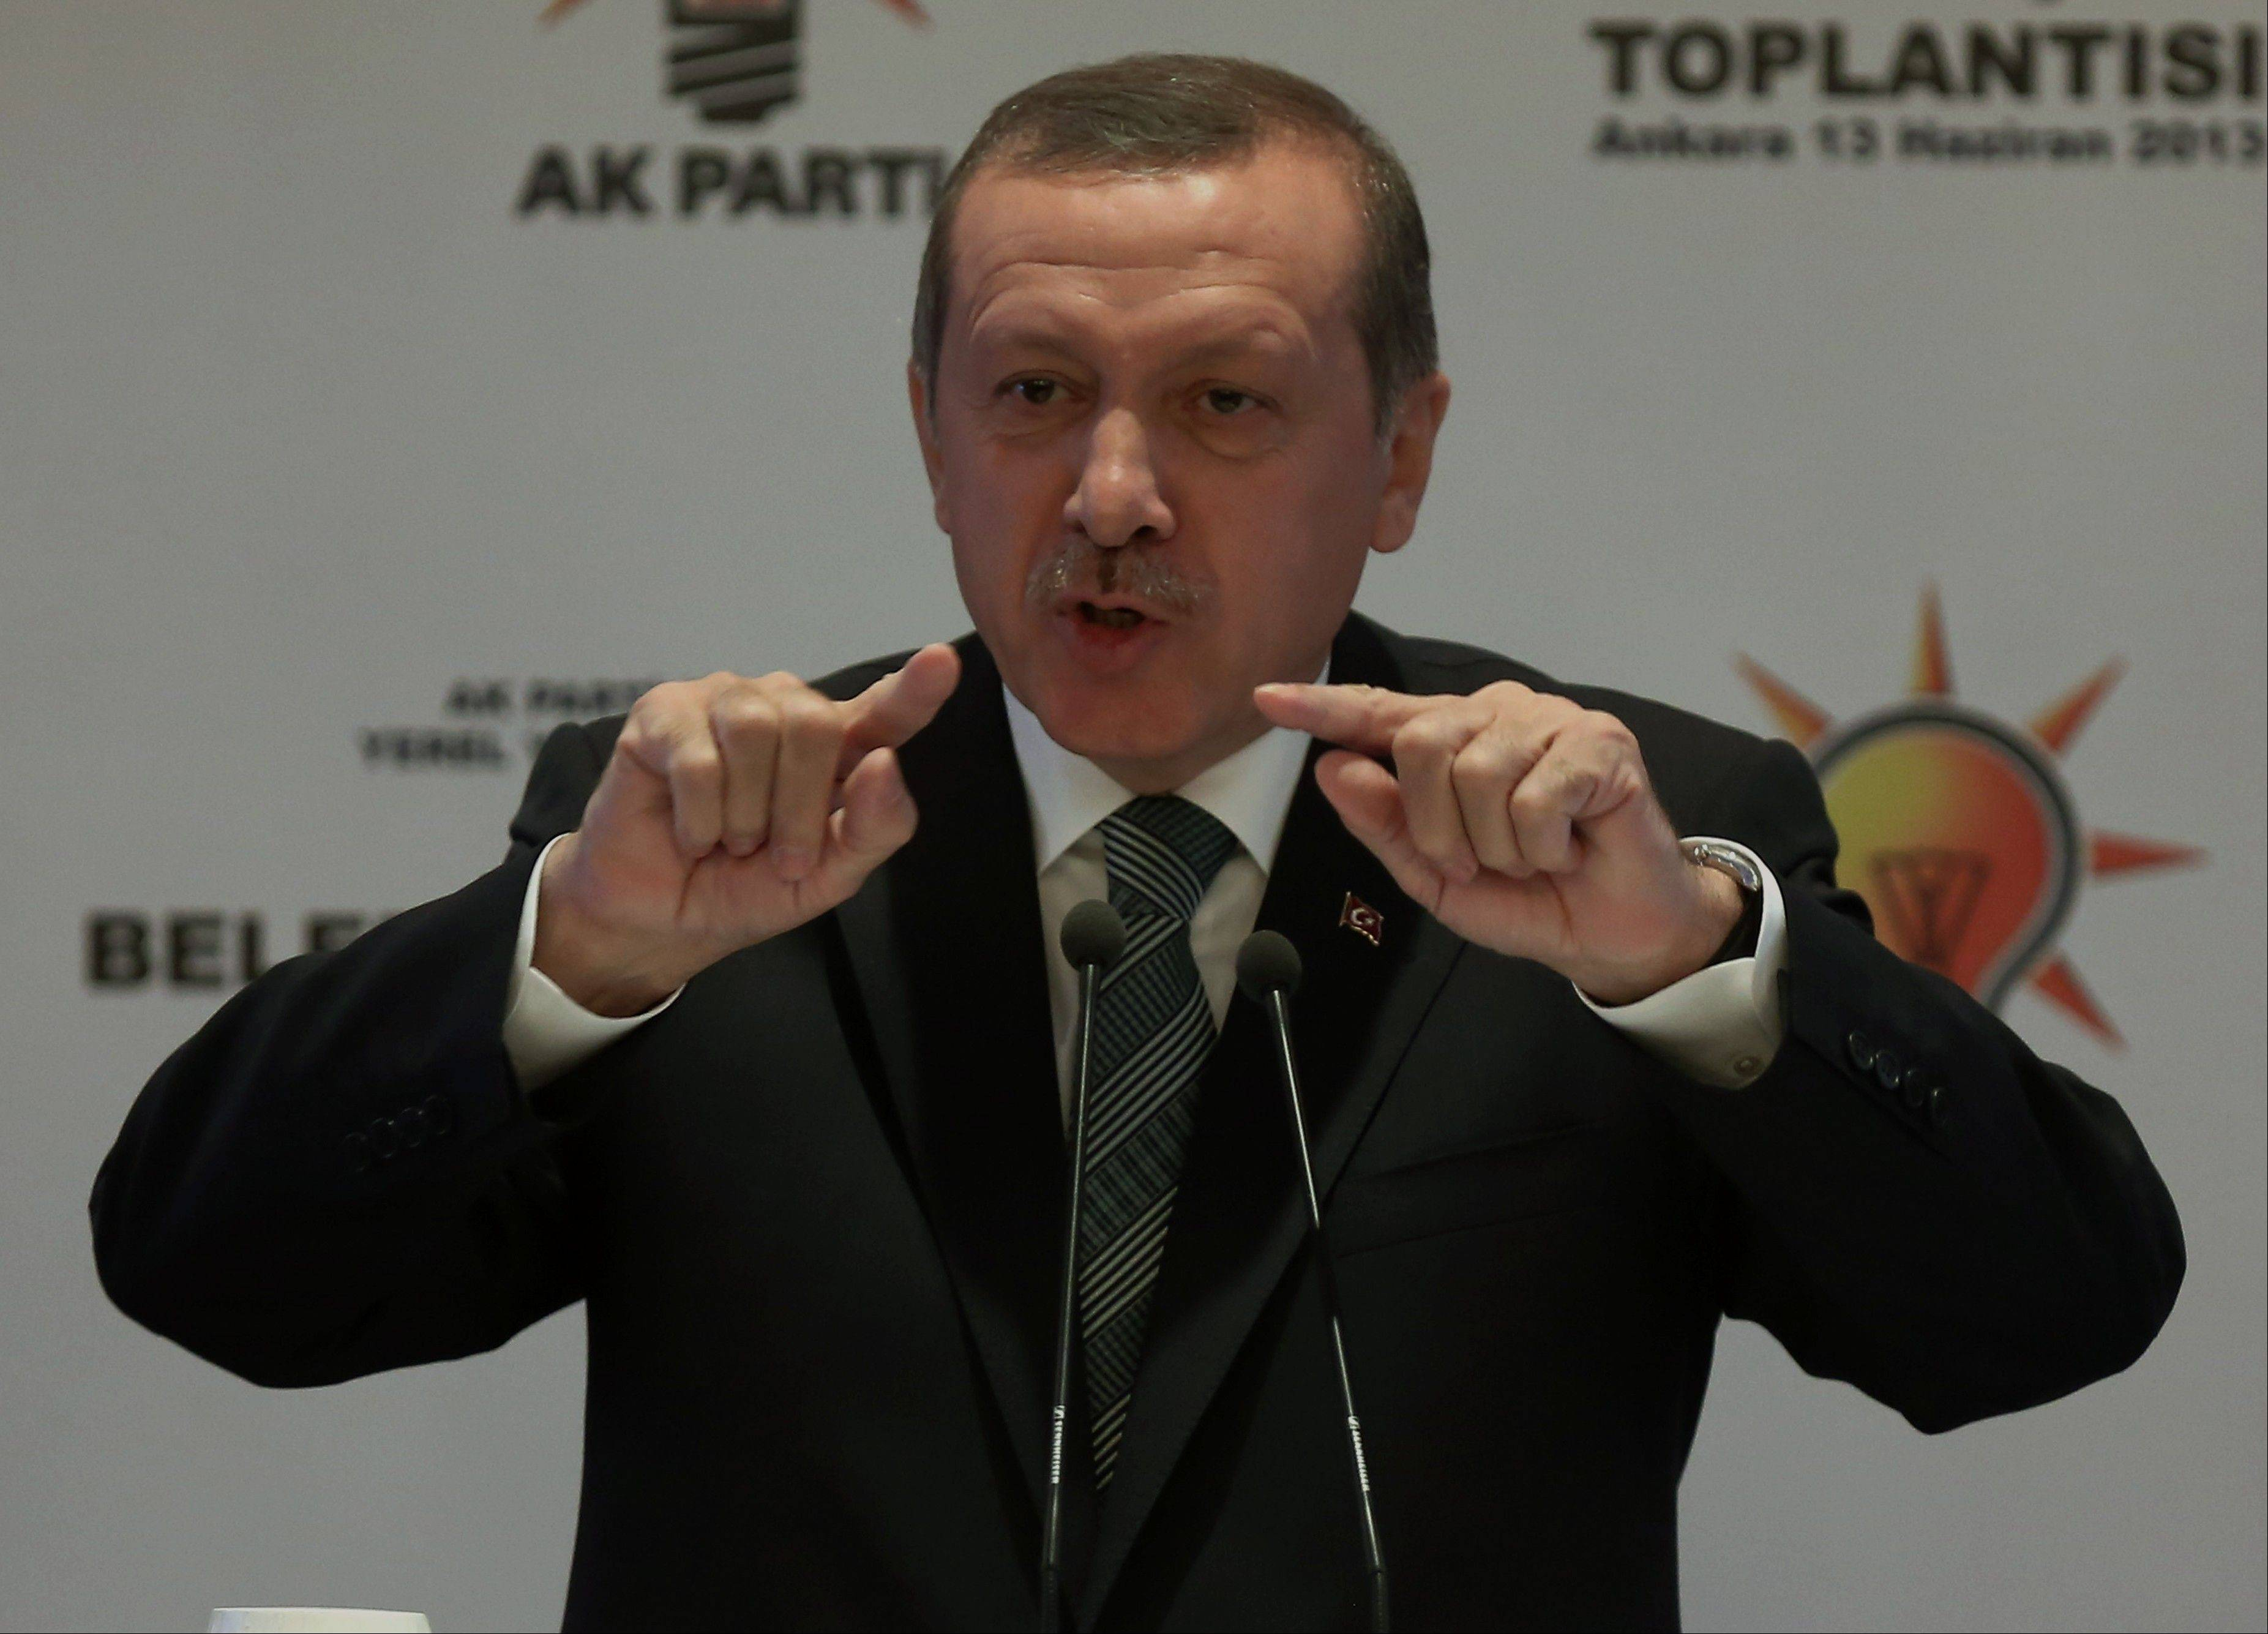 Associated PressTurkish Prime Minister Recep Tayyip Erdogan addresses the mayors from his ruling Justice and Development Party in Ankara, Turkey, Thursday, June 13, 2013.